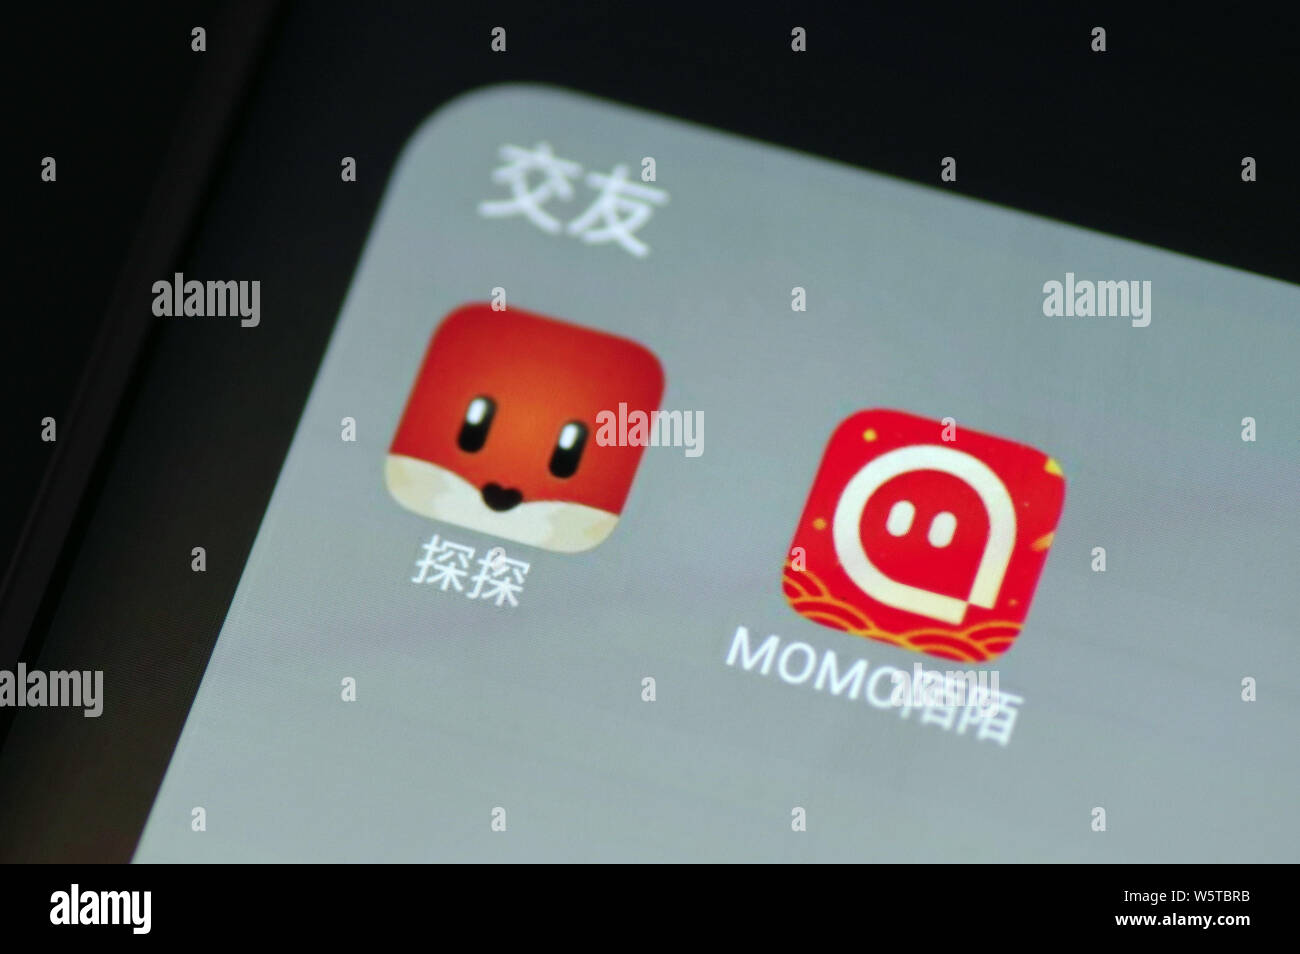 Dating App Icons Stock Photos & Dating App Icons Stock Images - Alamy